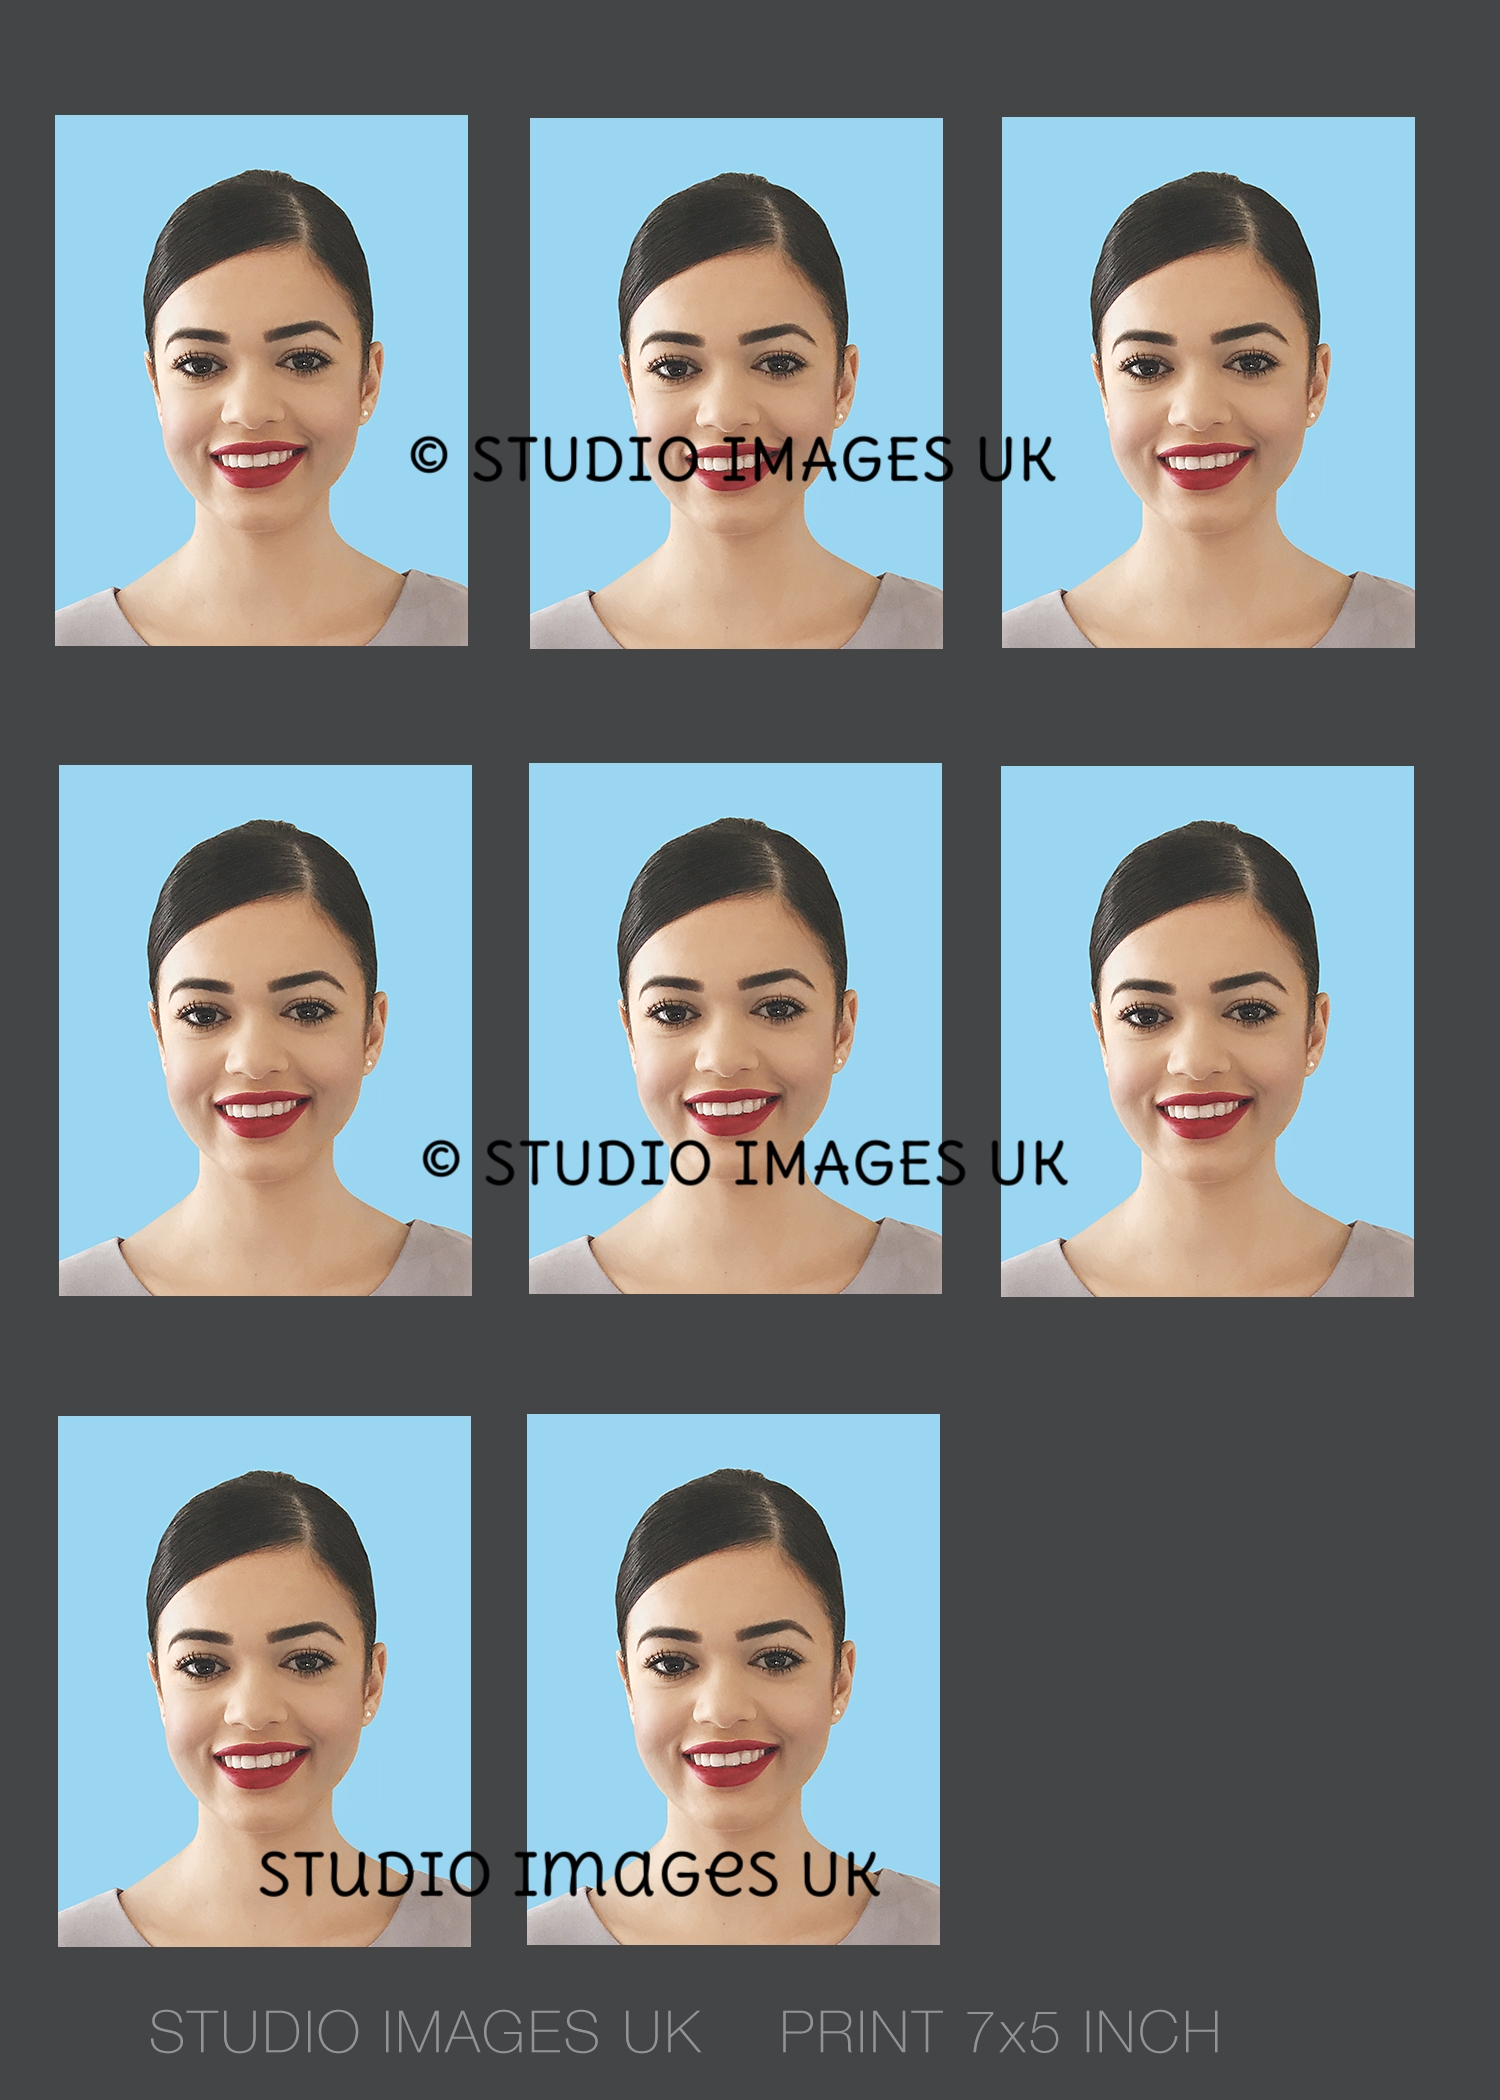 Send us a half length image taken on a light wall and we will add the light blue background and resize to passport dimensions for you.